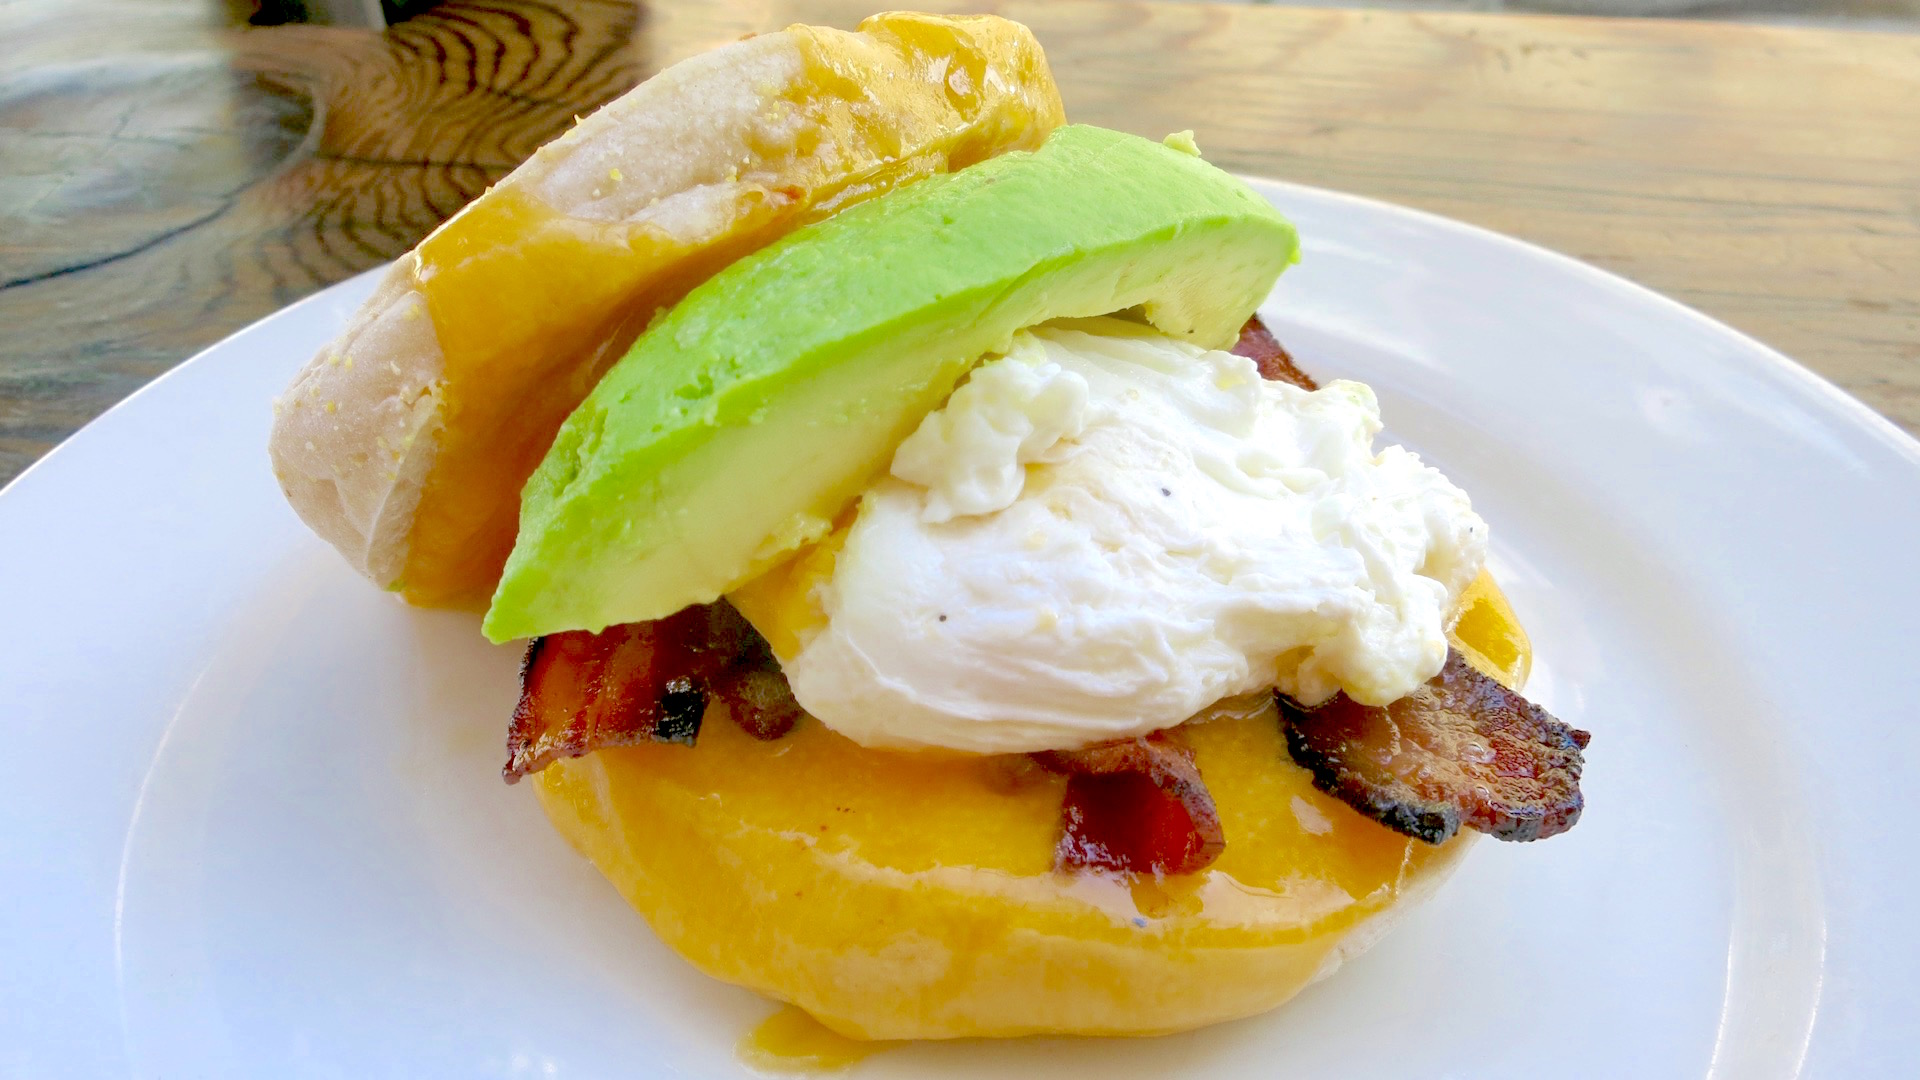 You get more bang for your buck with Chop Bar's version of the Egg McMuffin.